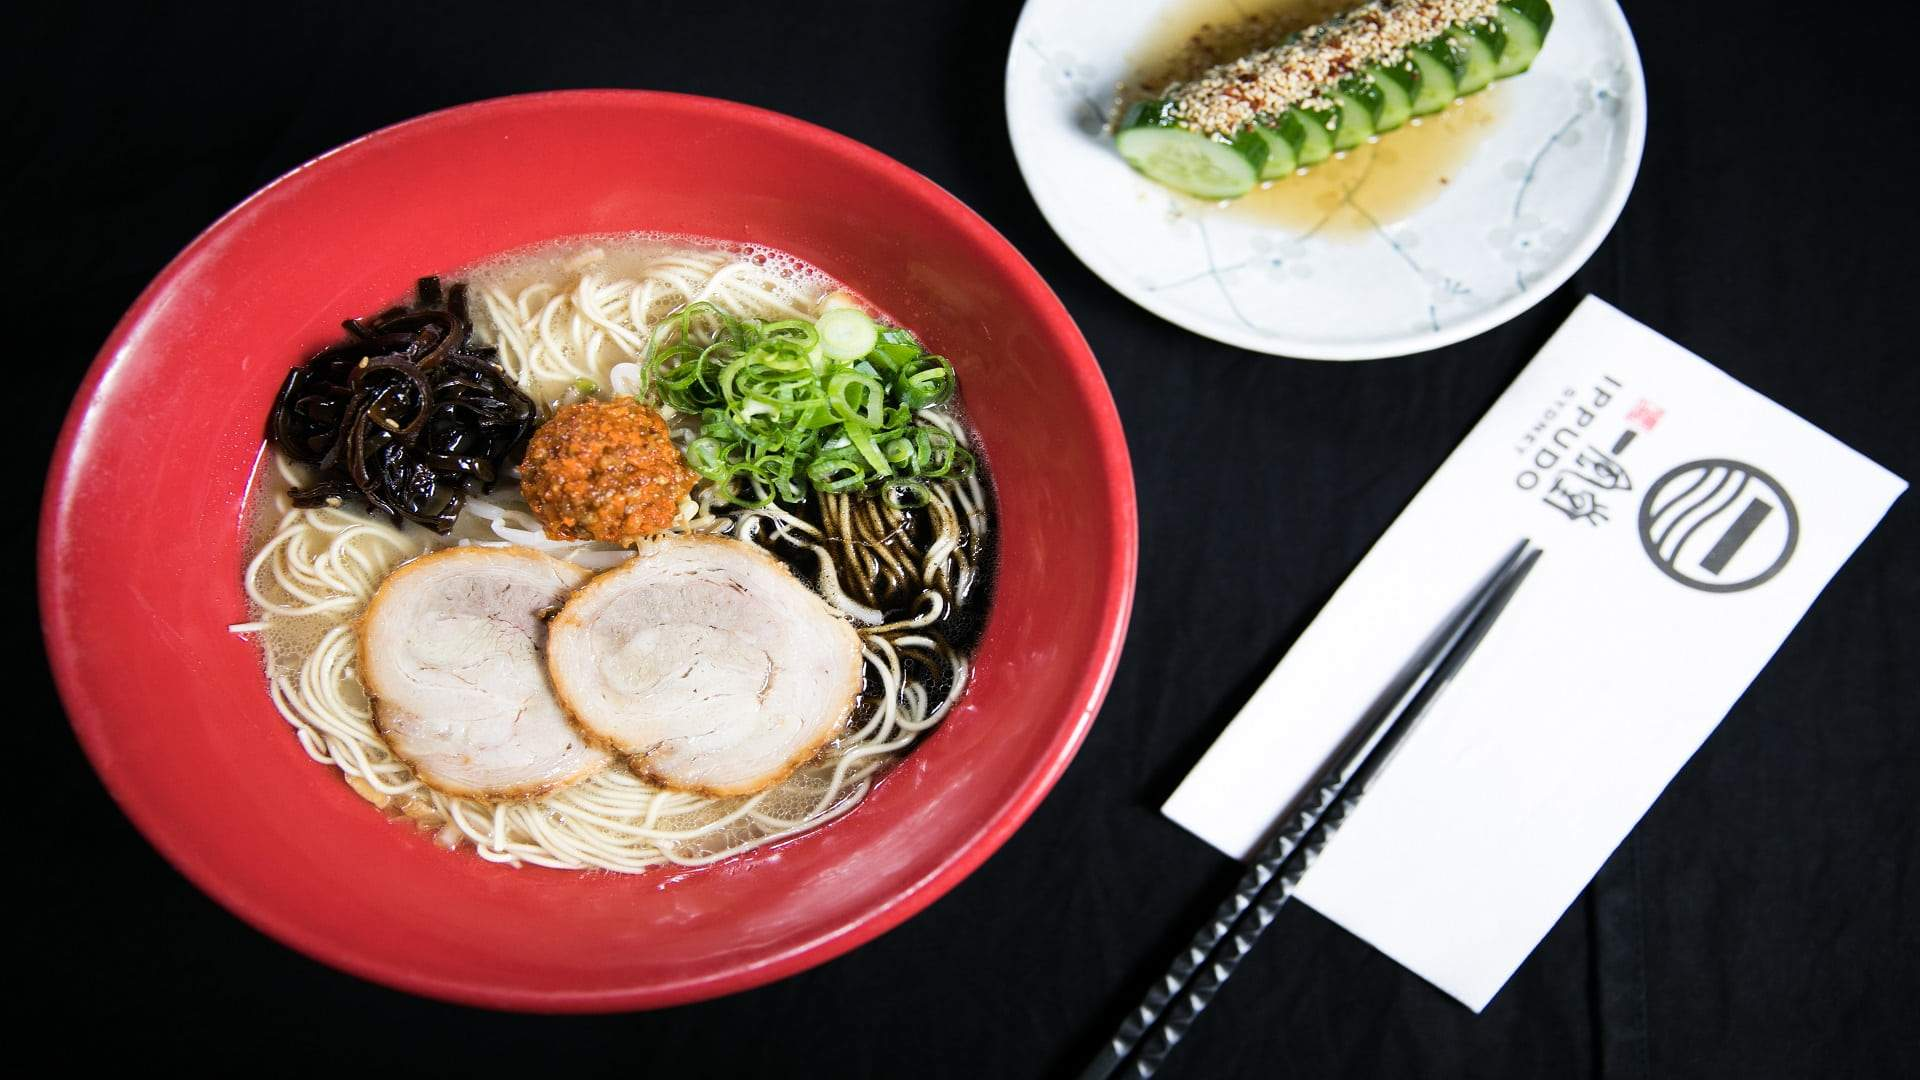 Where to Go for Dinner When the Only Thing You Want Is a Big Bowl of Ramen